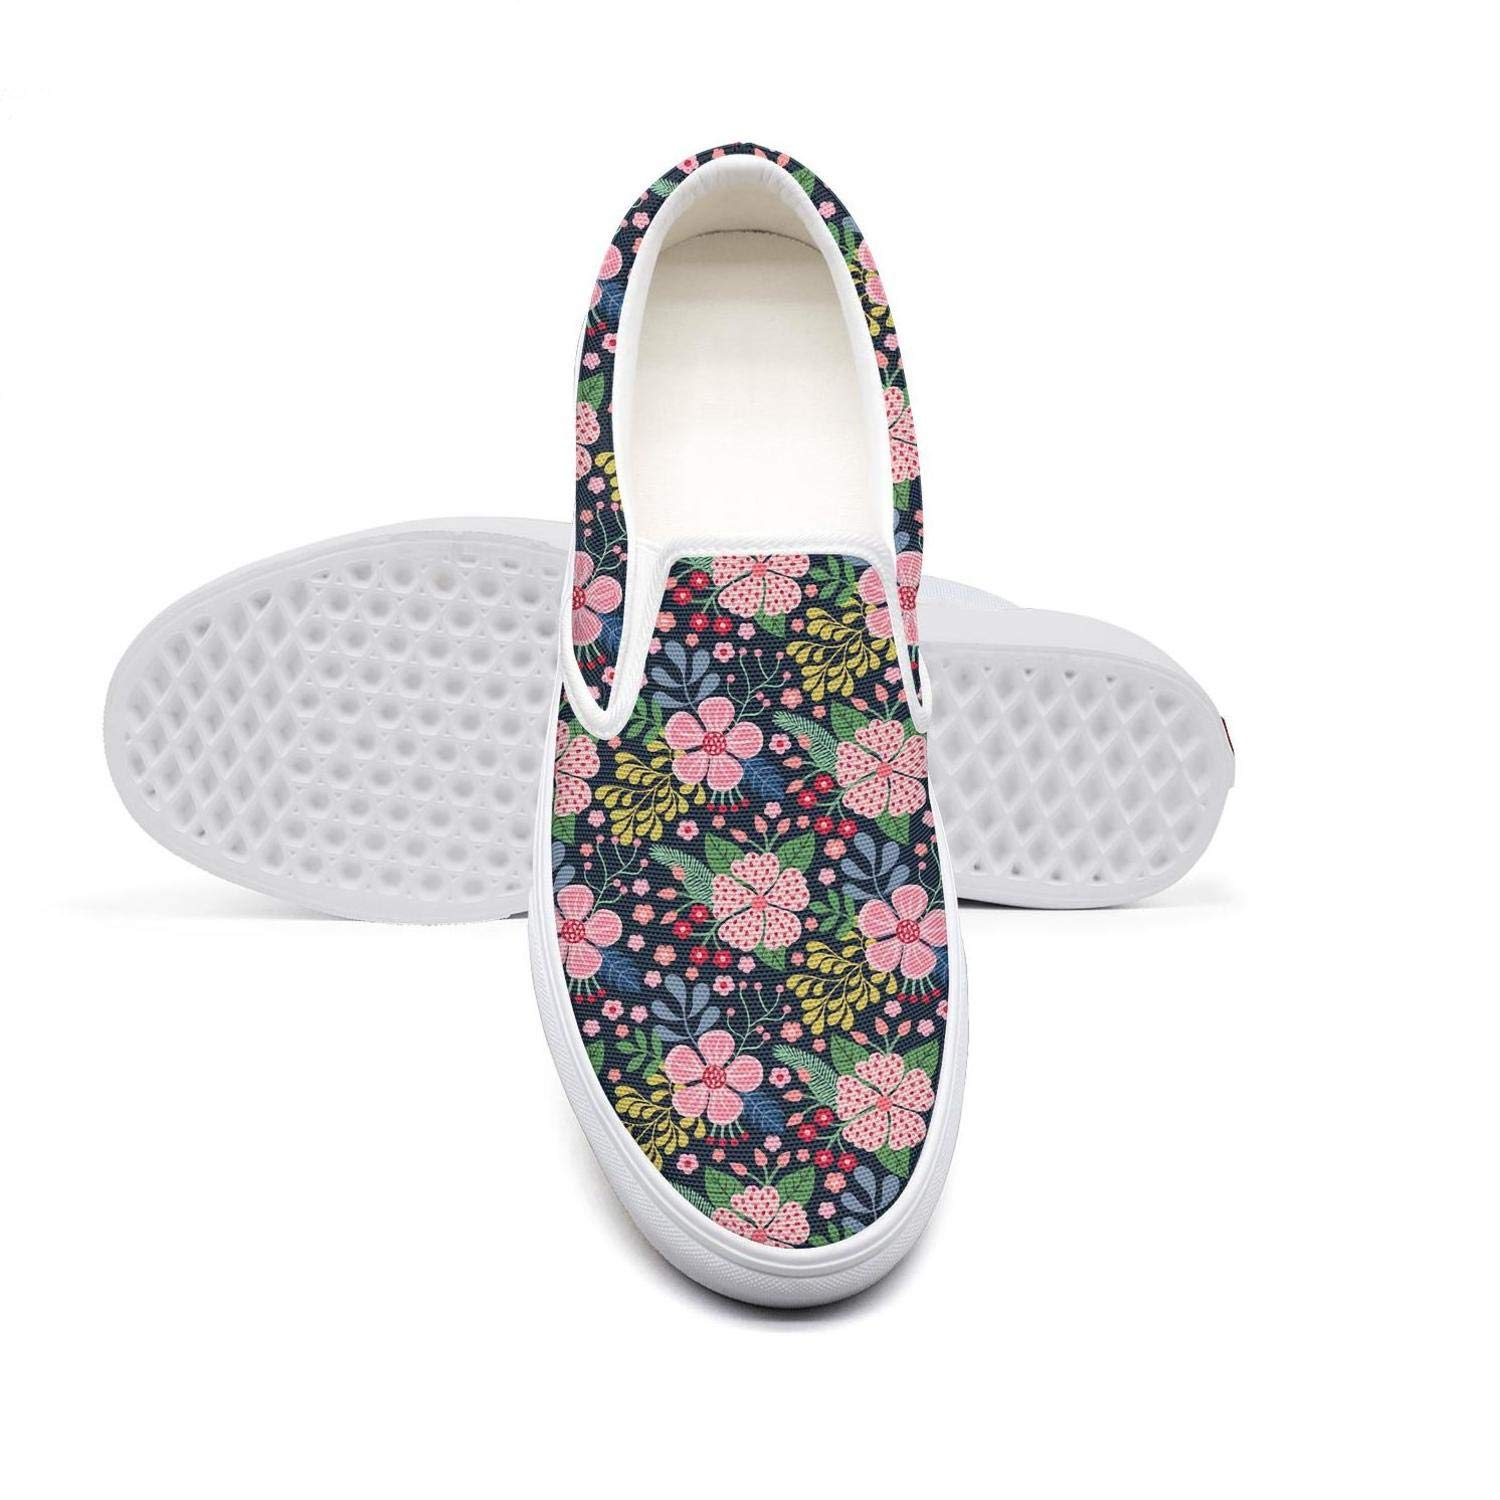 NAILINA Womens Shoes Slip ons Canvas Shoes Skate Sneakers Colorful Lush Flower Vector Pattern Plimsoll Popular